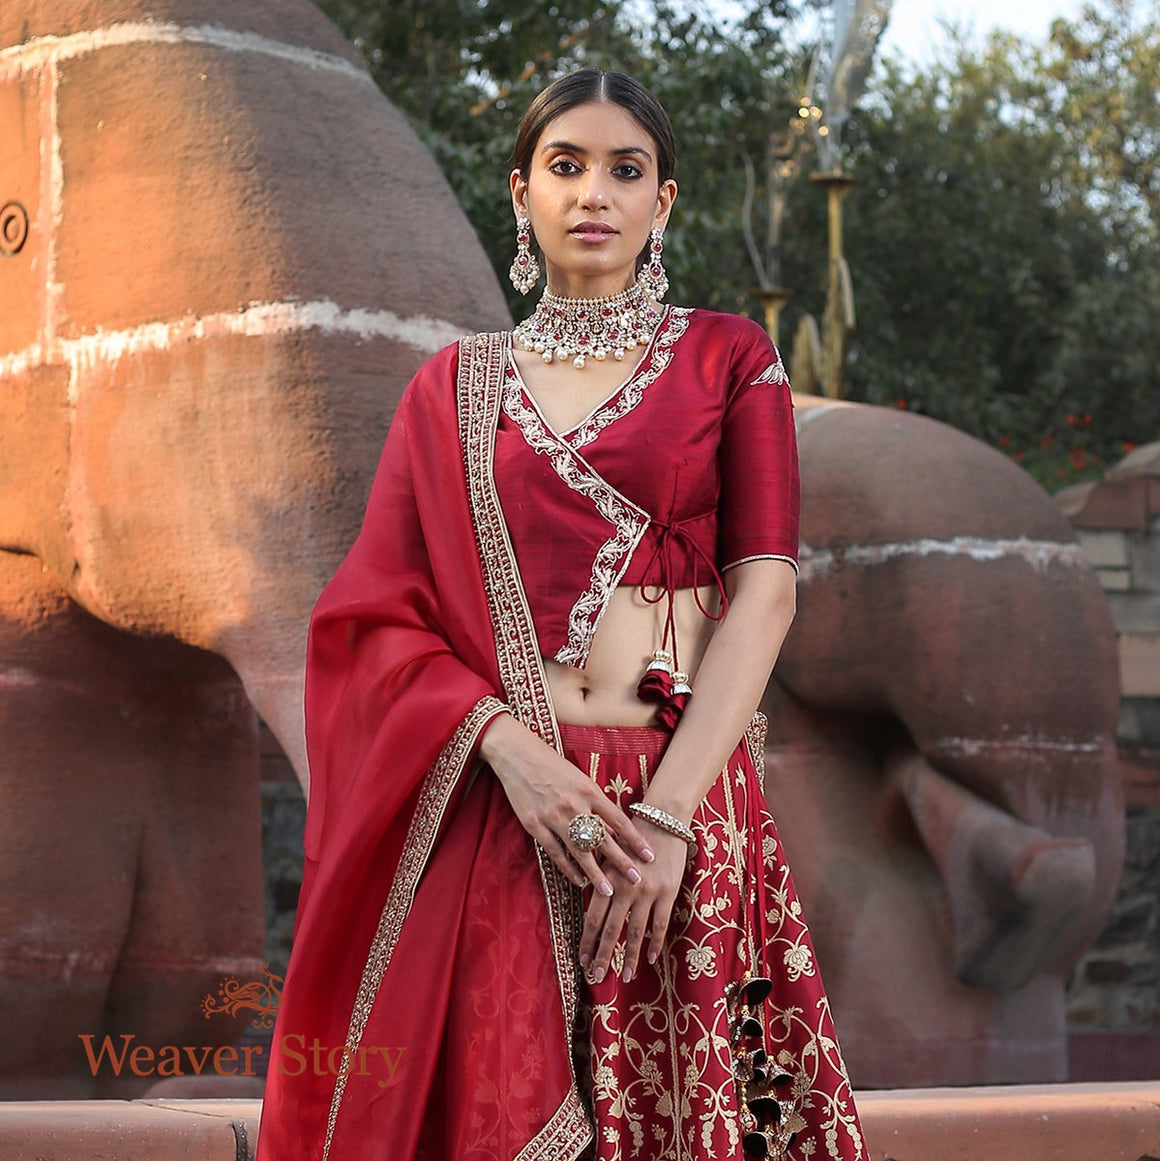 Handwoven Banarasi Lehenga in Regal Maroon with Zardozi Embroidered Blouse and Dupatta